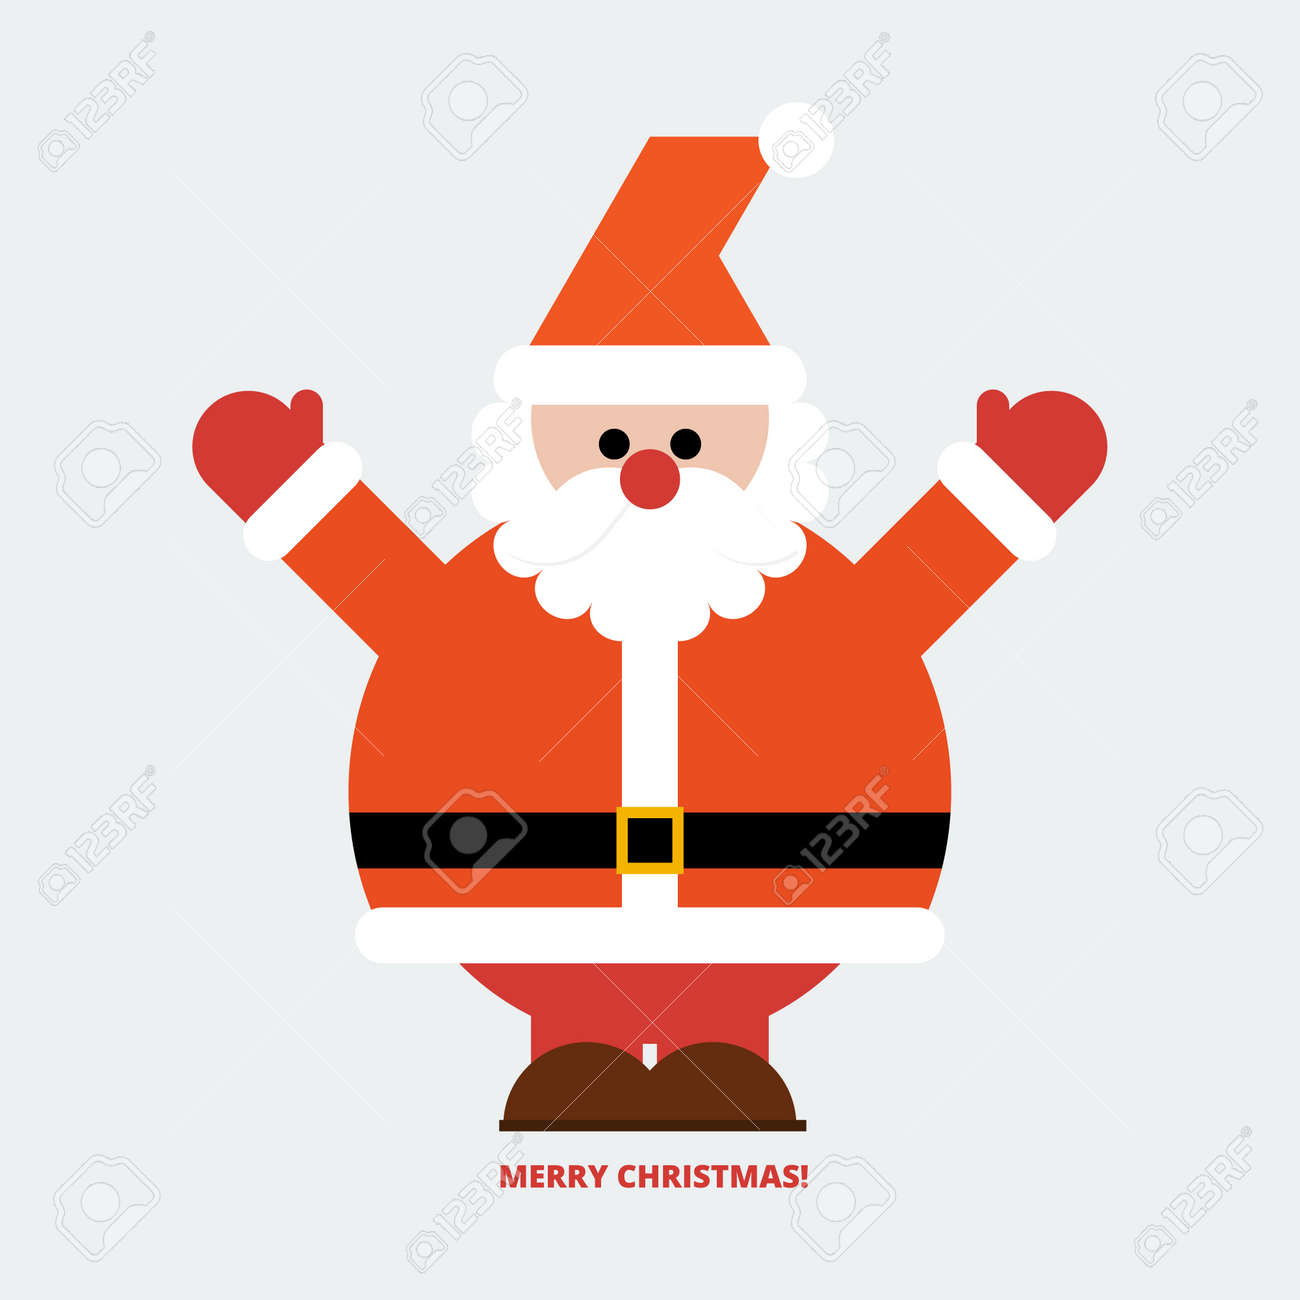 Merry Christmas Santa Claus Greeting Card In Flat Style Royalty Free